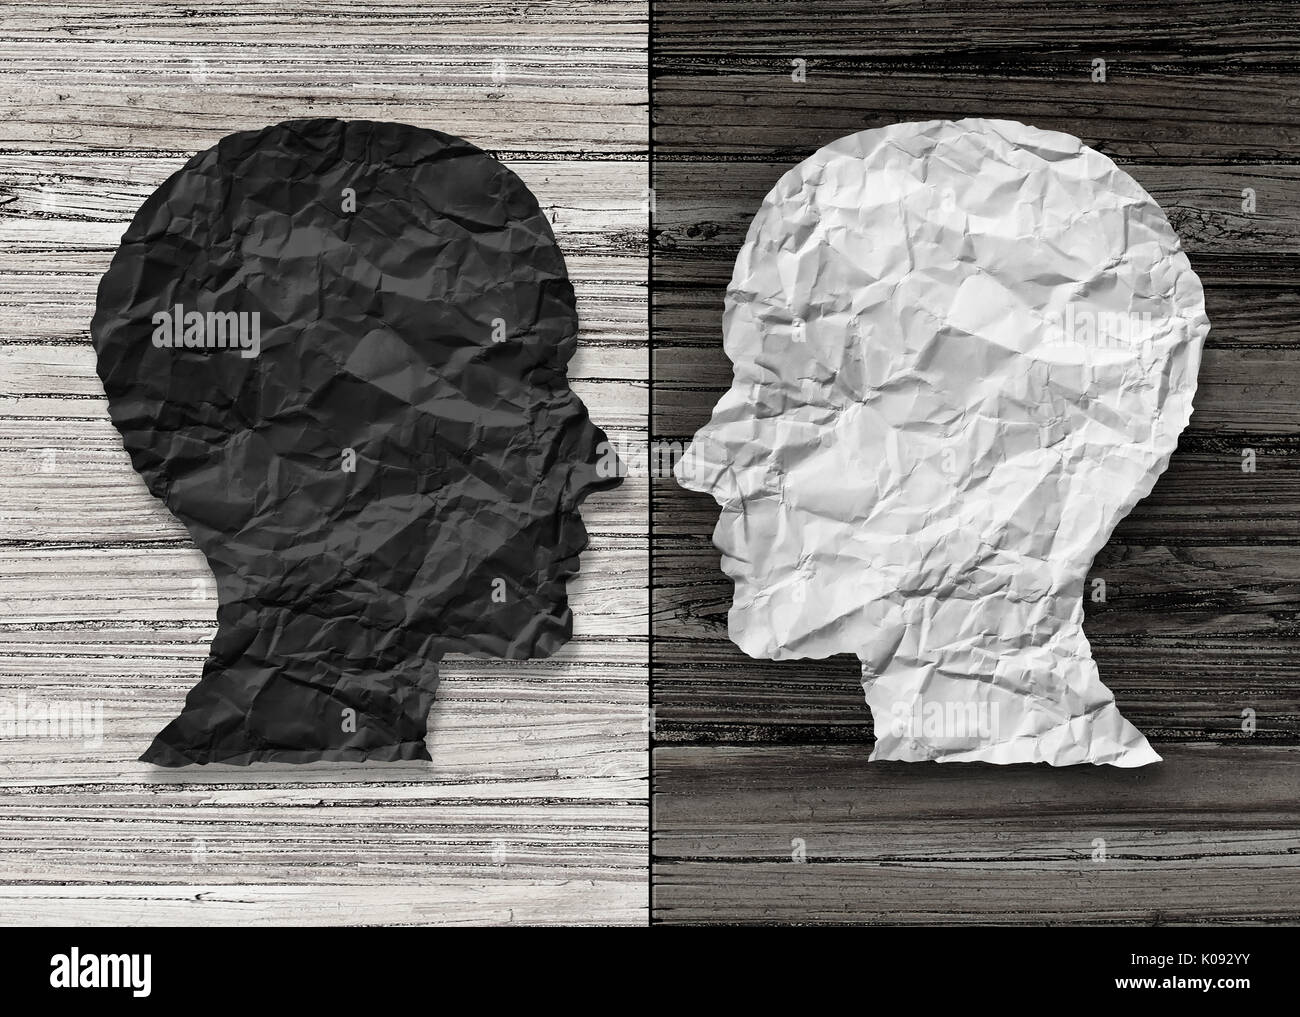 Bipolar mental health and brain disorder concept as a human head in paper divided in two colors as a neurological mood and emotion symbol. - Stock Image